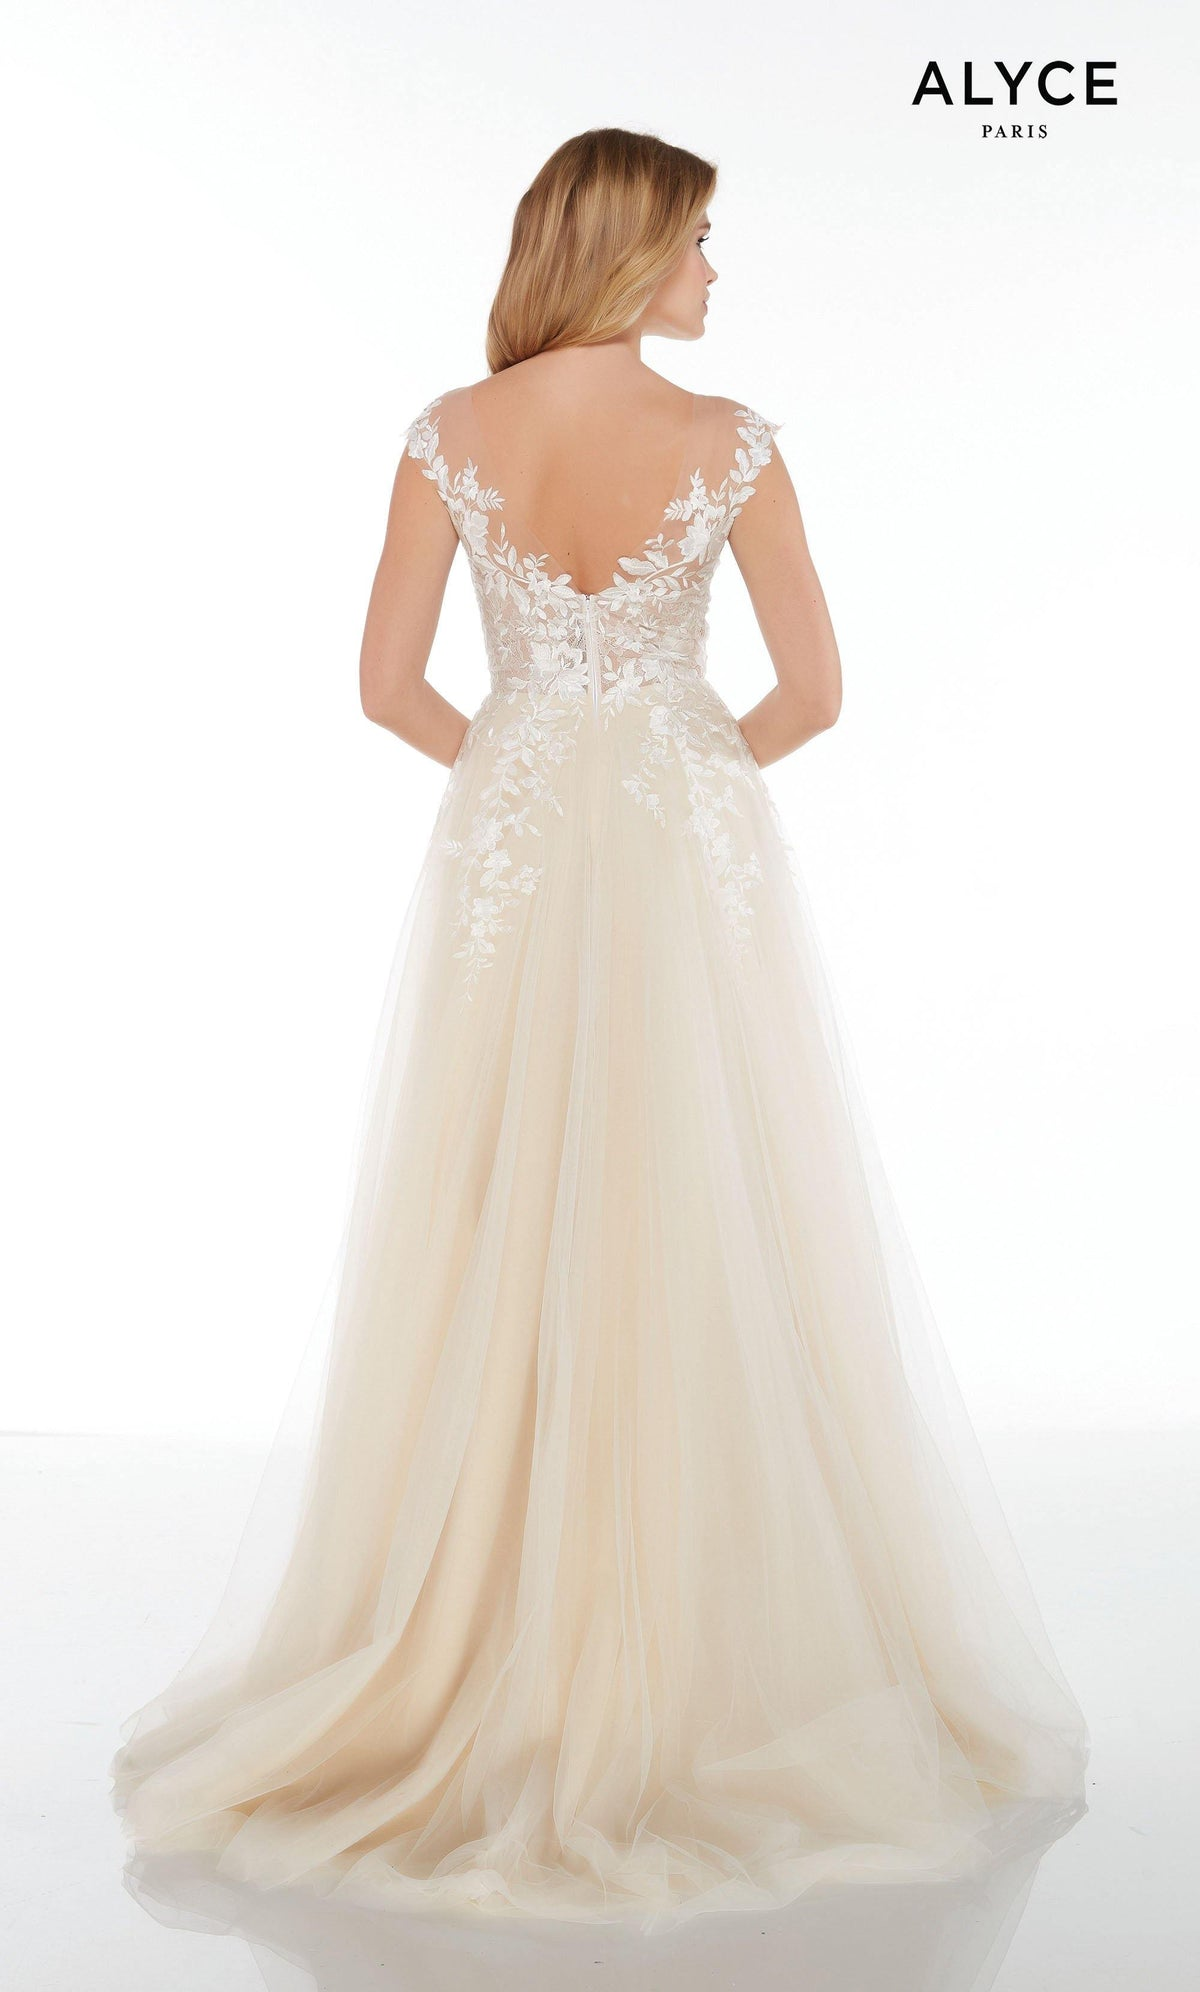 Off the shoulder Ivory-Champagne tulle-lace informal wedding dress with a V-shaped back, sheer bodice, and a train